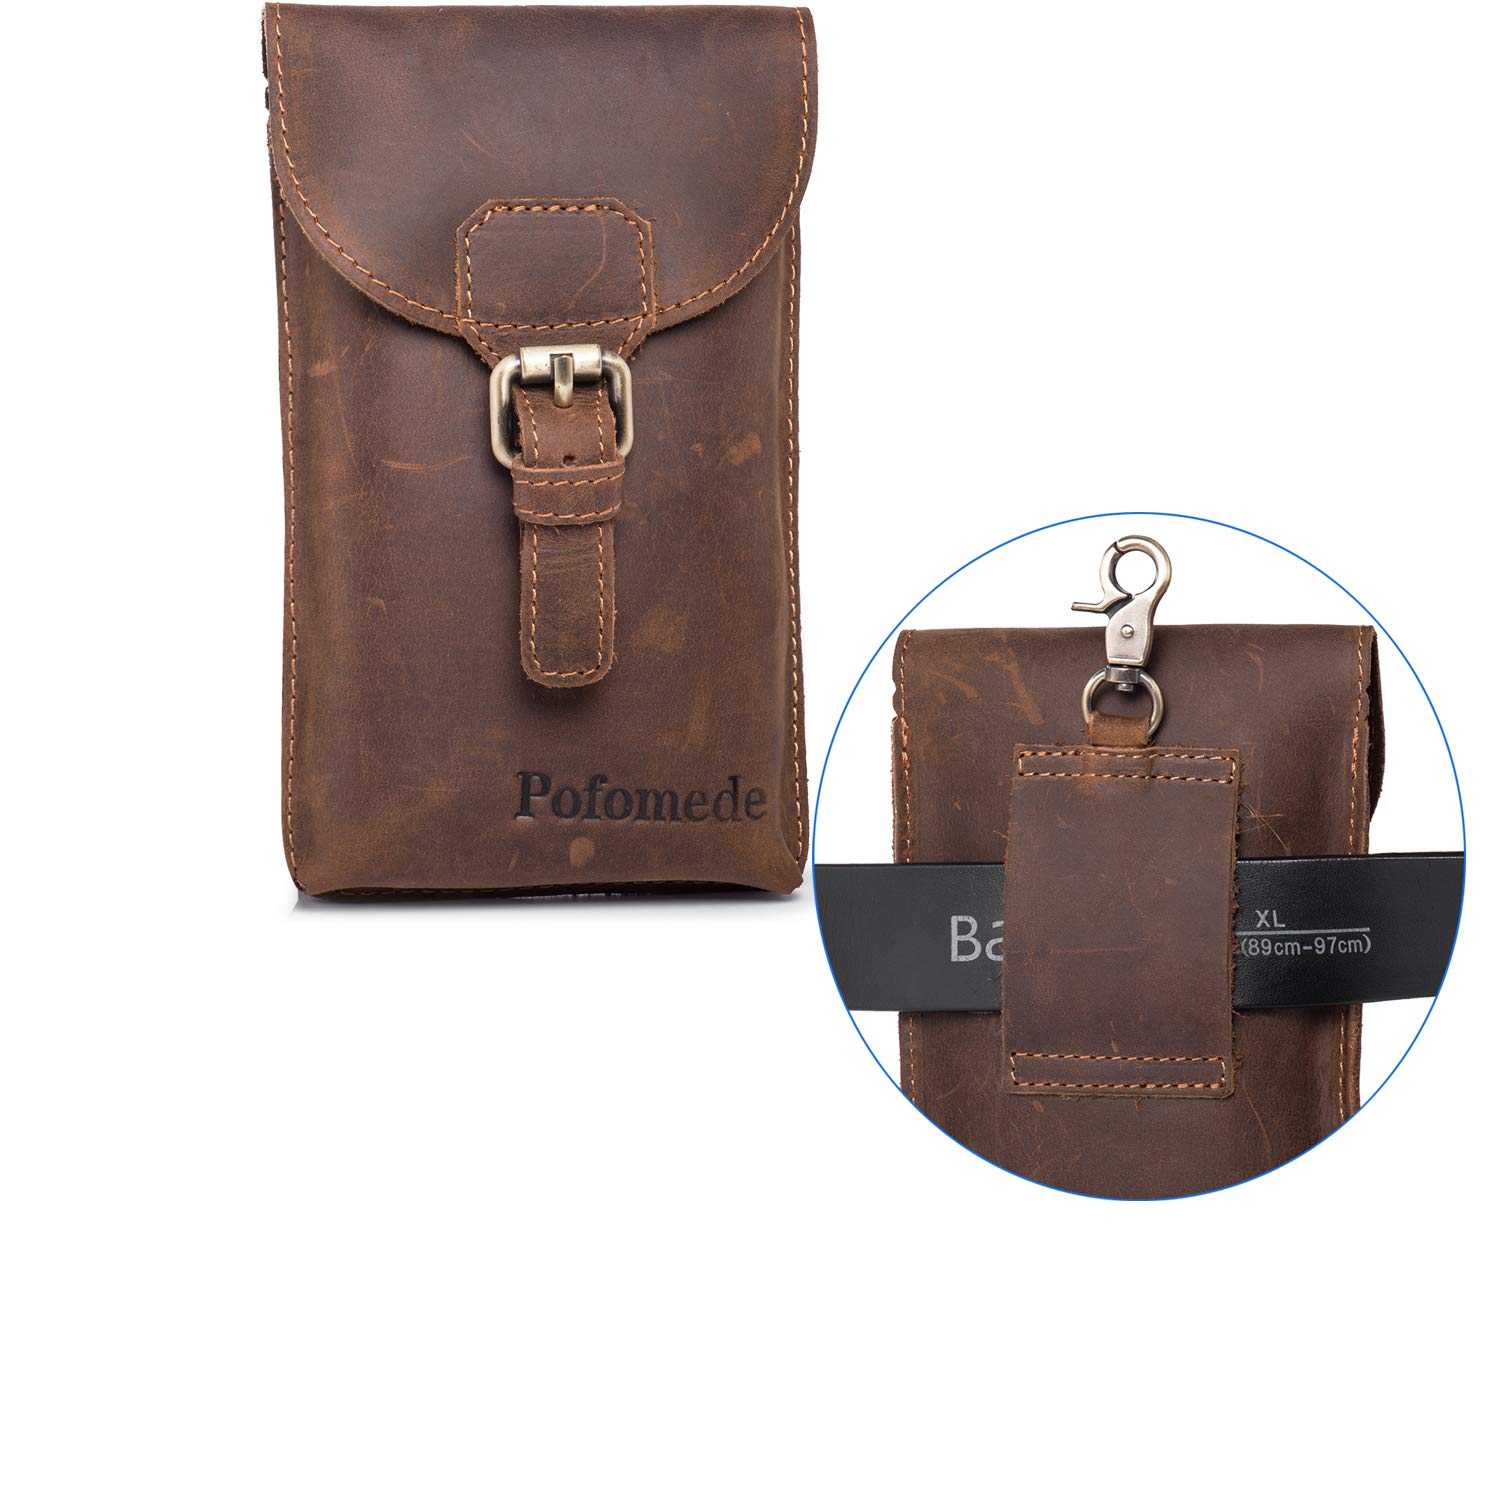 Pofomede Cell Phone Holster Vertical Leather Belt Case Pouch with Clip Loop Compatible for iPhone XR XS X 7 8 Plus XS Max Belt Carrier Holder Large Phone Sleeve for Galaxy S8/9 Plus Note 9 8 5 Brown